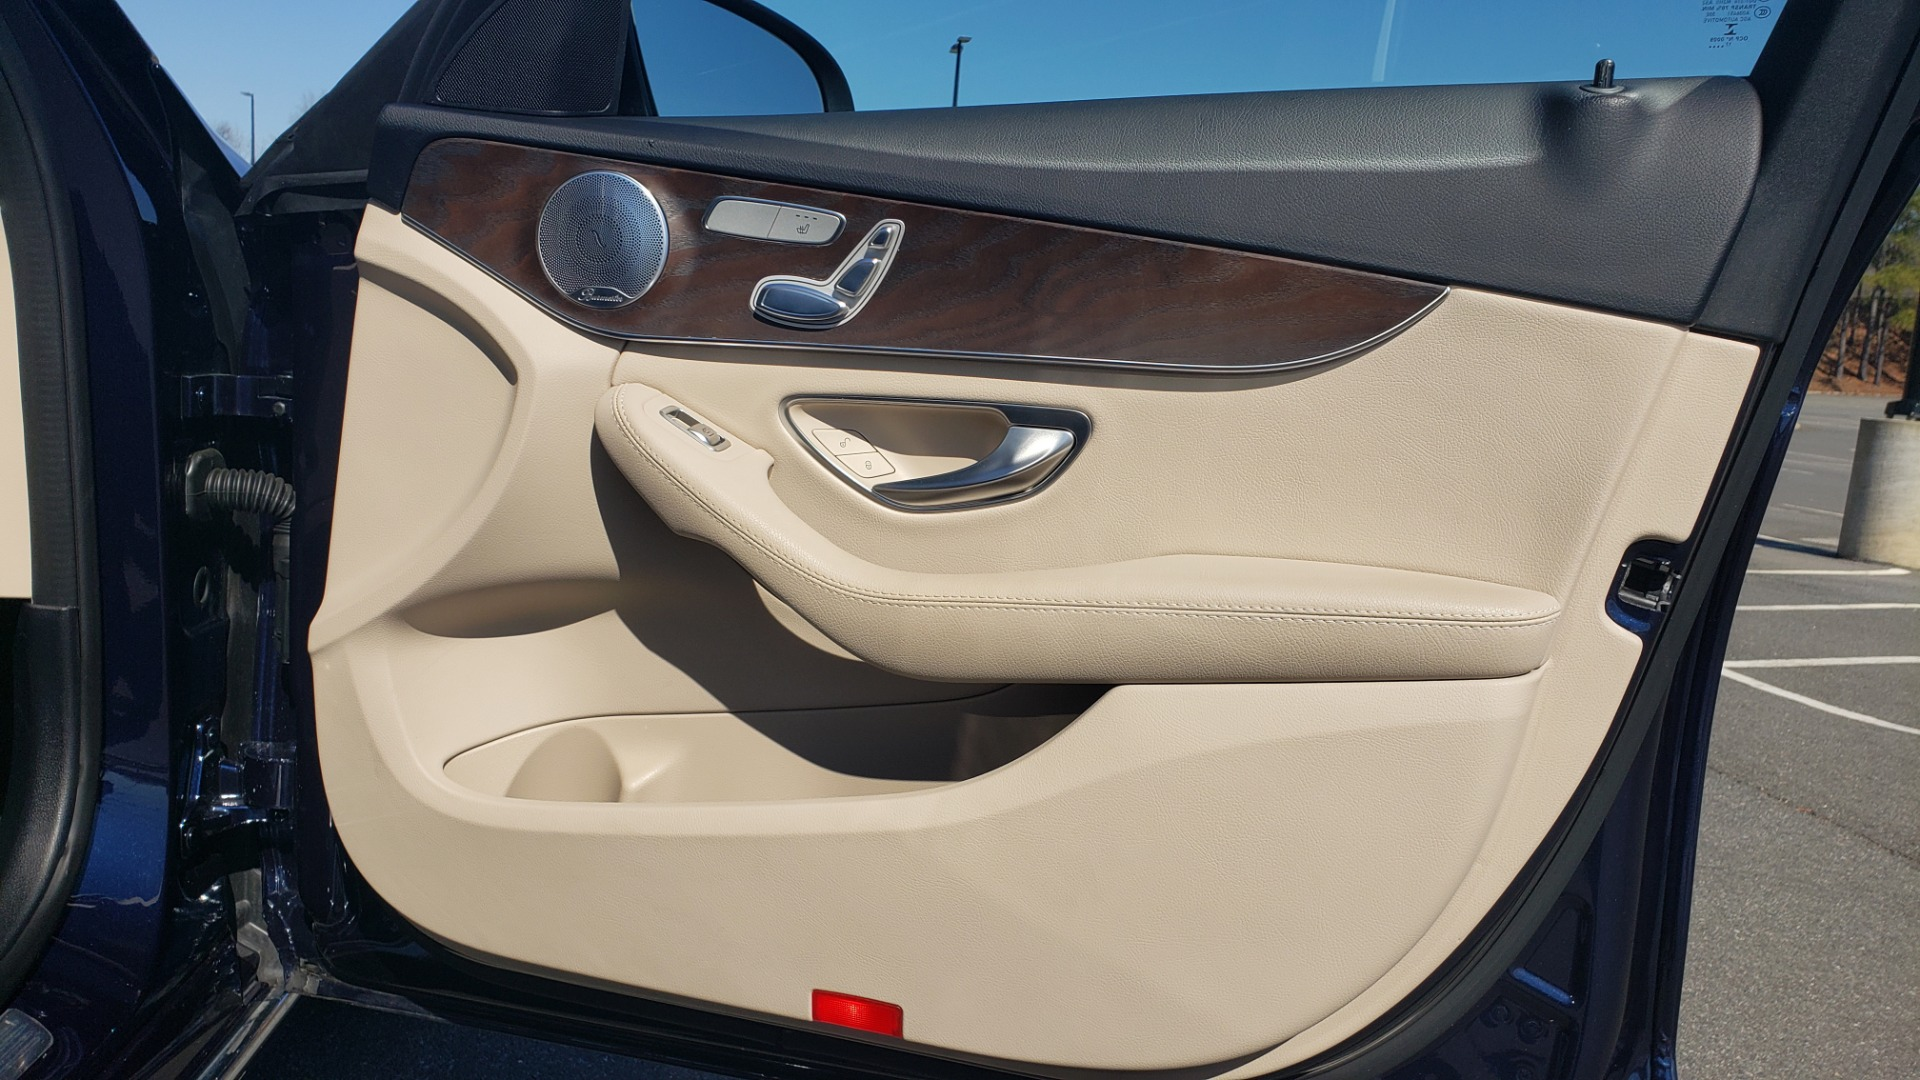 Used 2018 Mercedes-Benz C-CLASS C 300 PREMIUM / SUNROOF / BURMESTER / BSM / REARVIEW for sale $23,995 at Formula Imports in Charlotte NC 28227 56